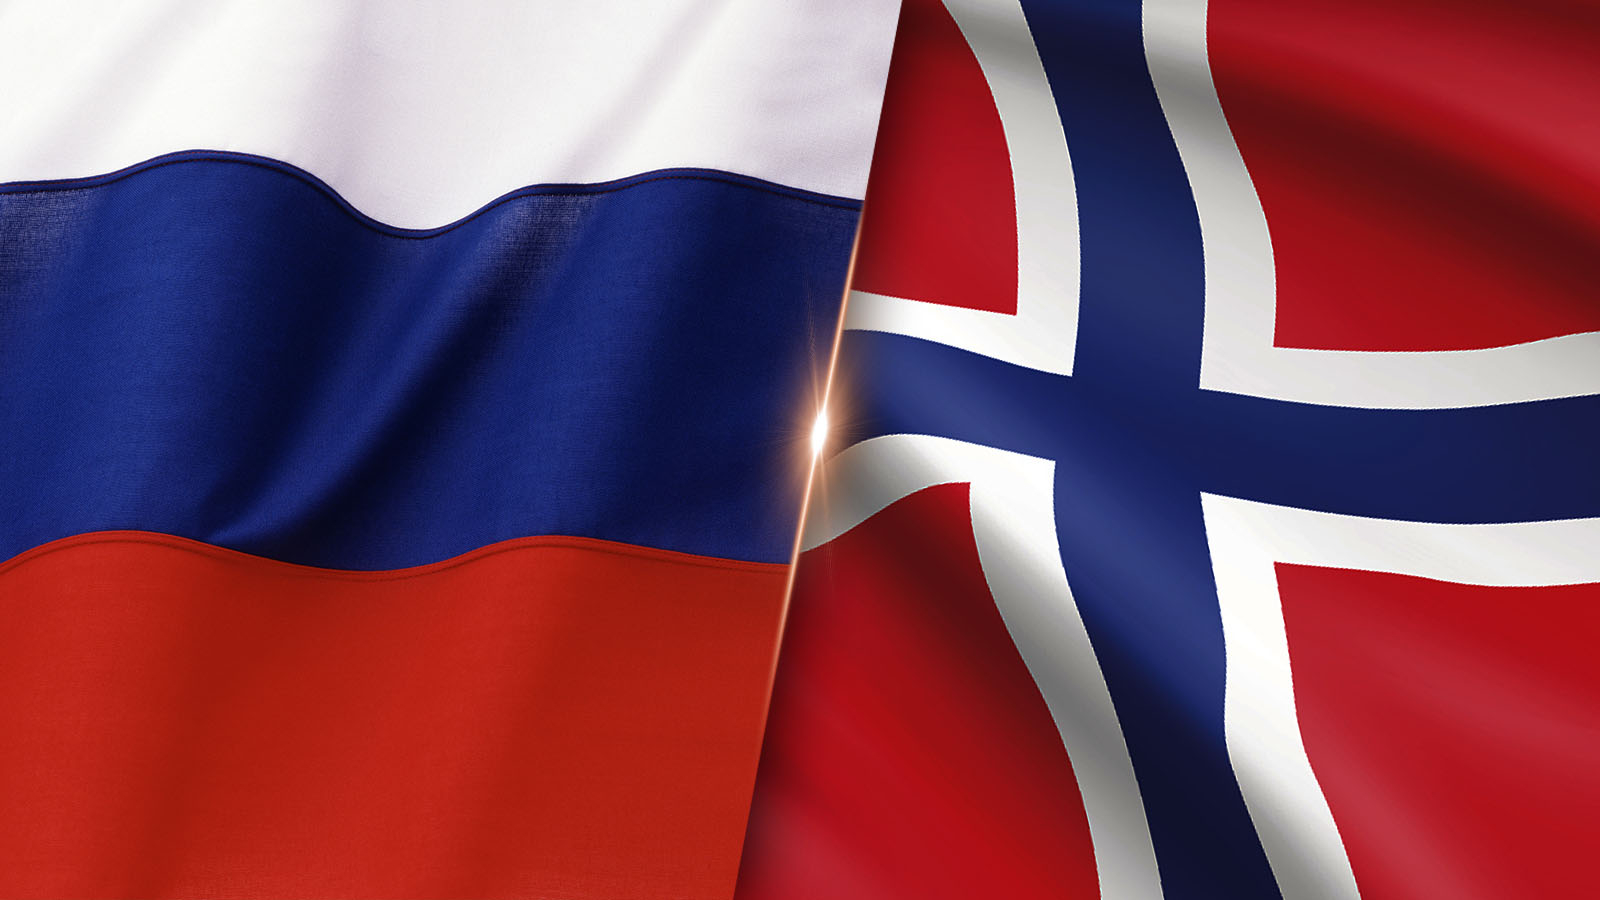 Moscow accuses Norway of 'spy mania' after Russian man's arrest in Oslo